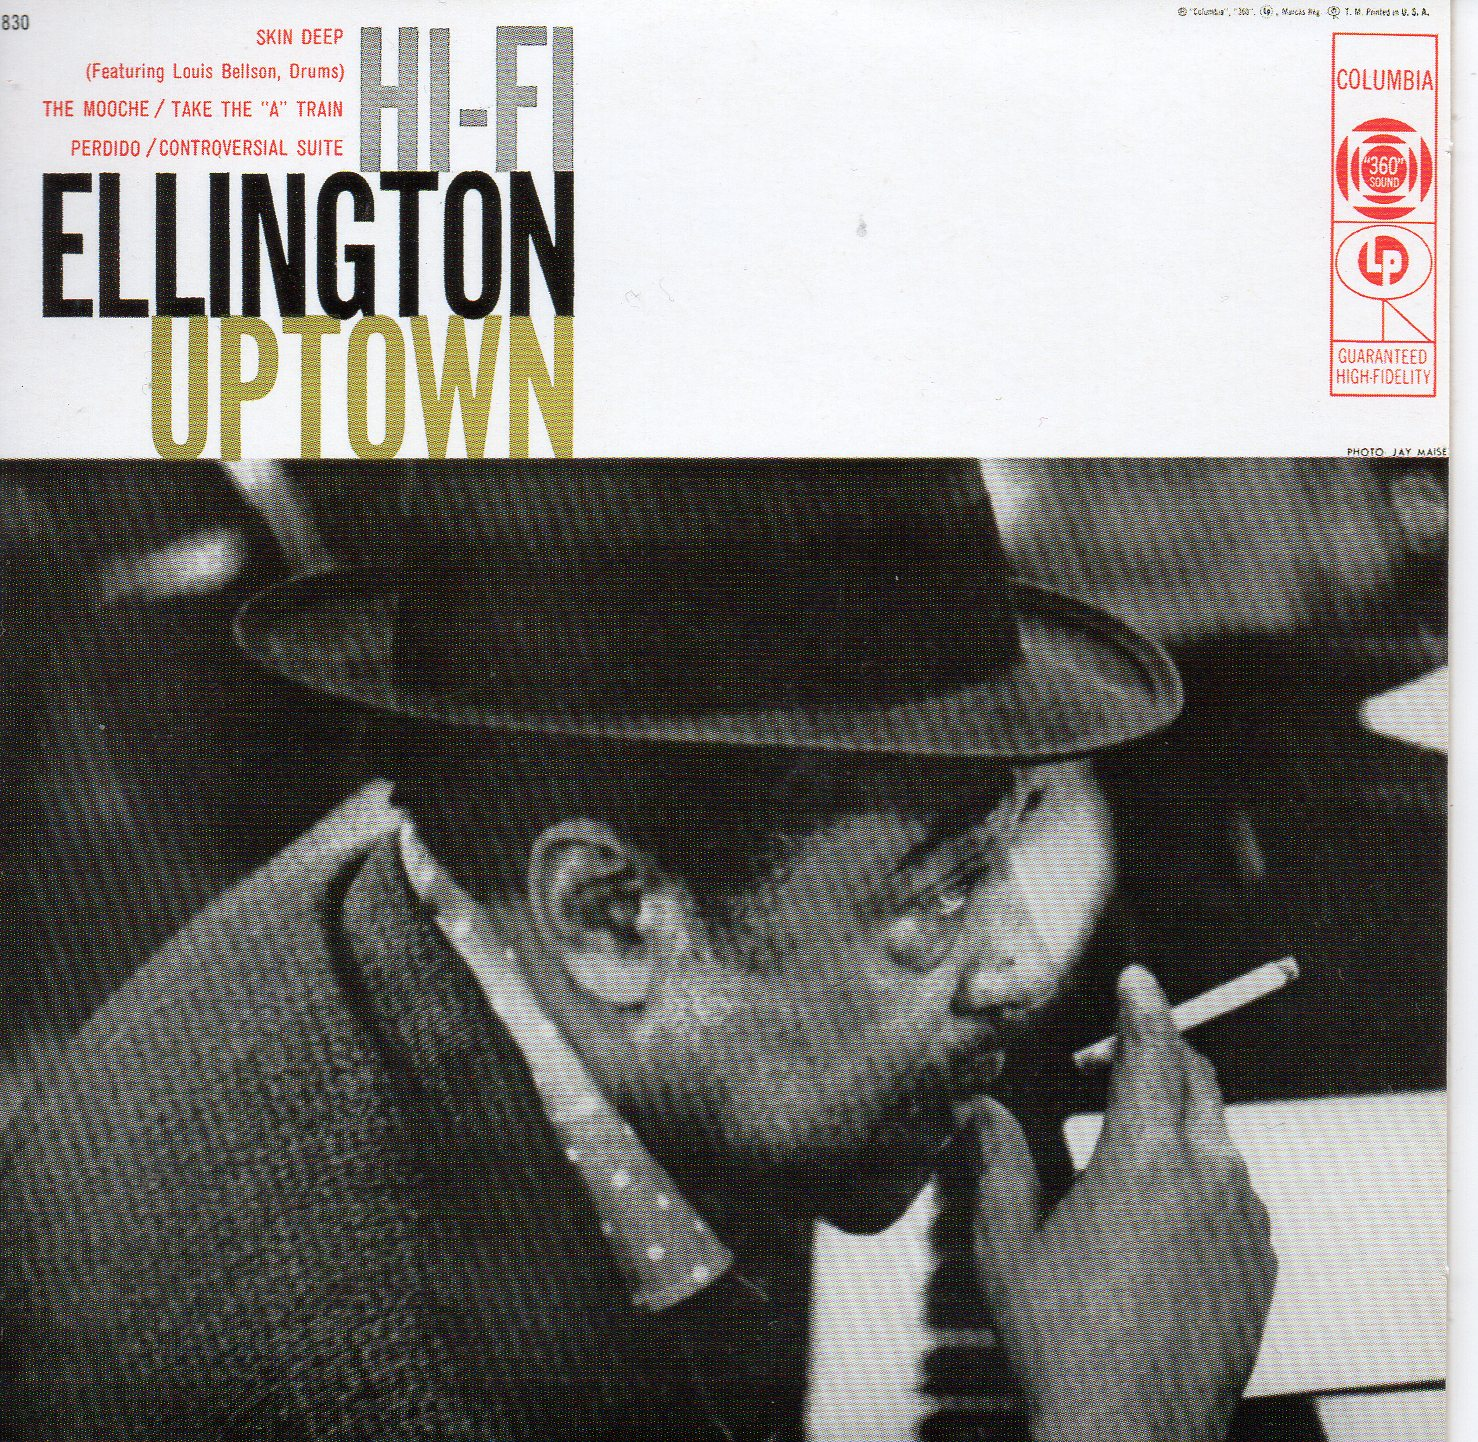 Duke ELLINGTON - Ellington Uptown - Mini Lp - 13-track Card Sleeve - Pochette Cartonnée